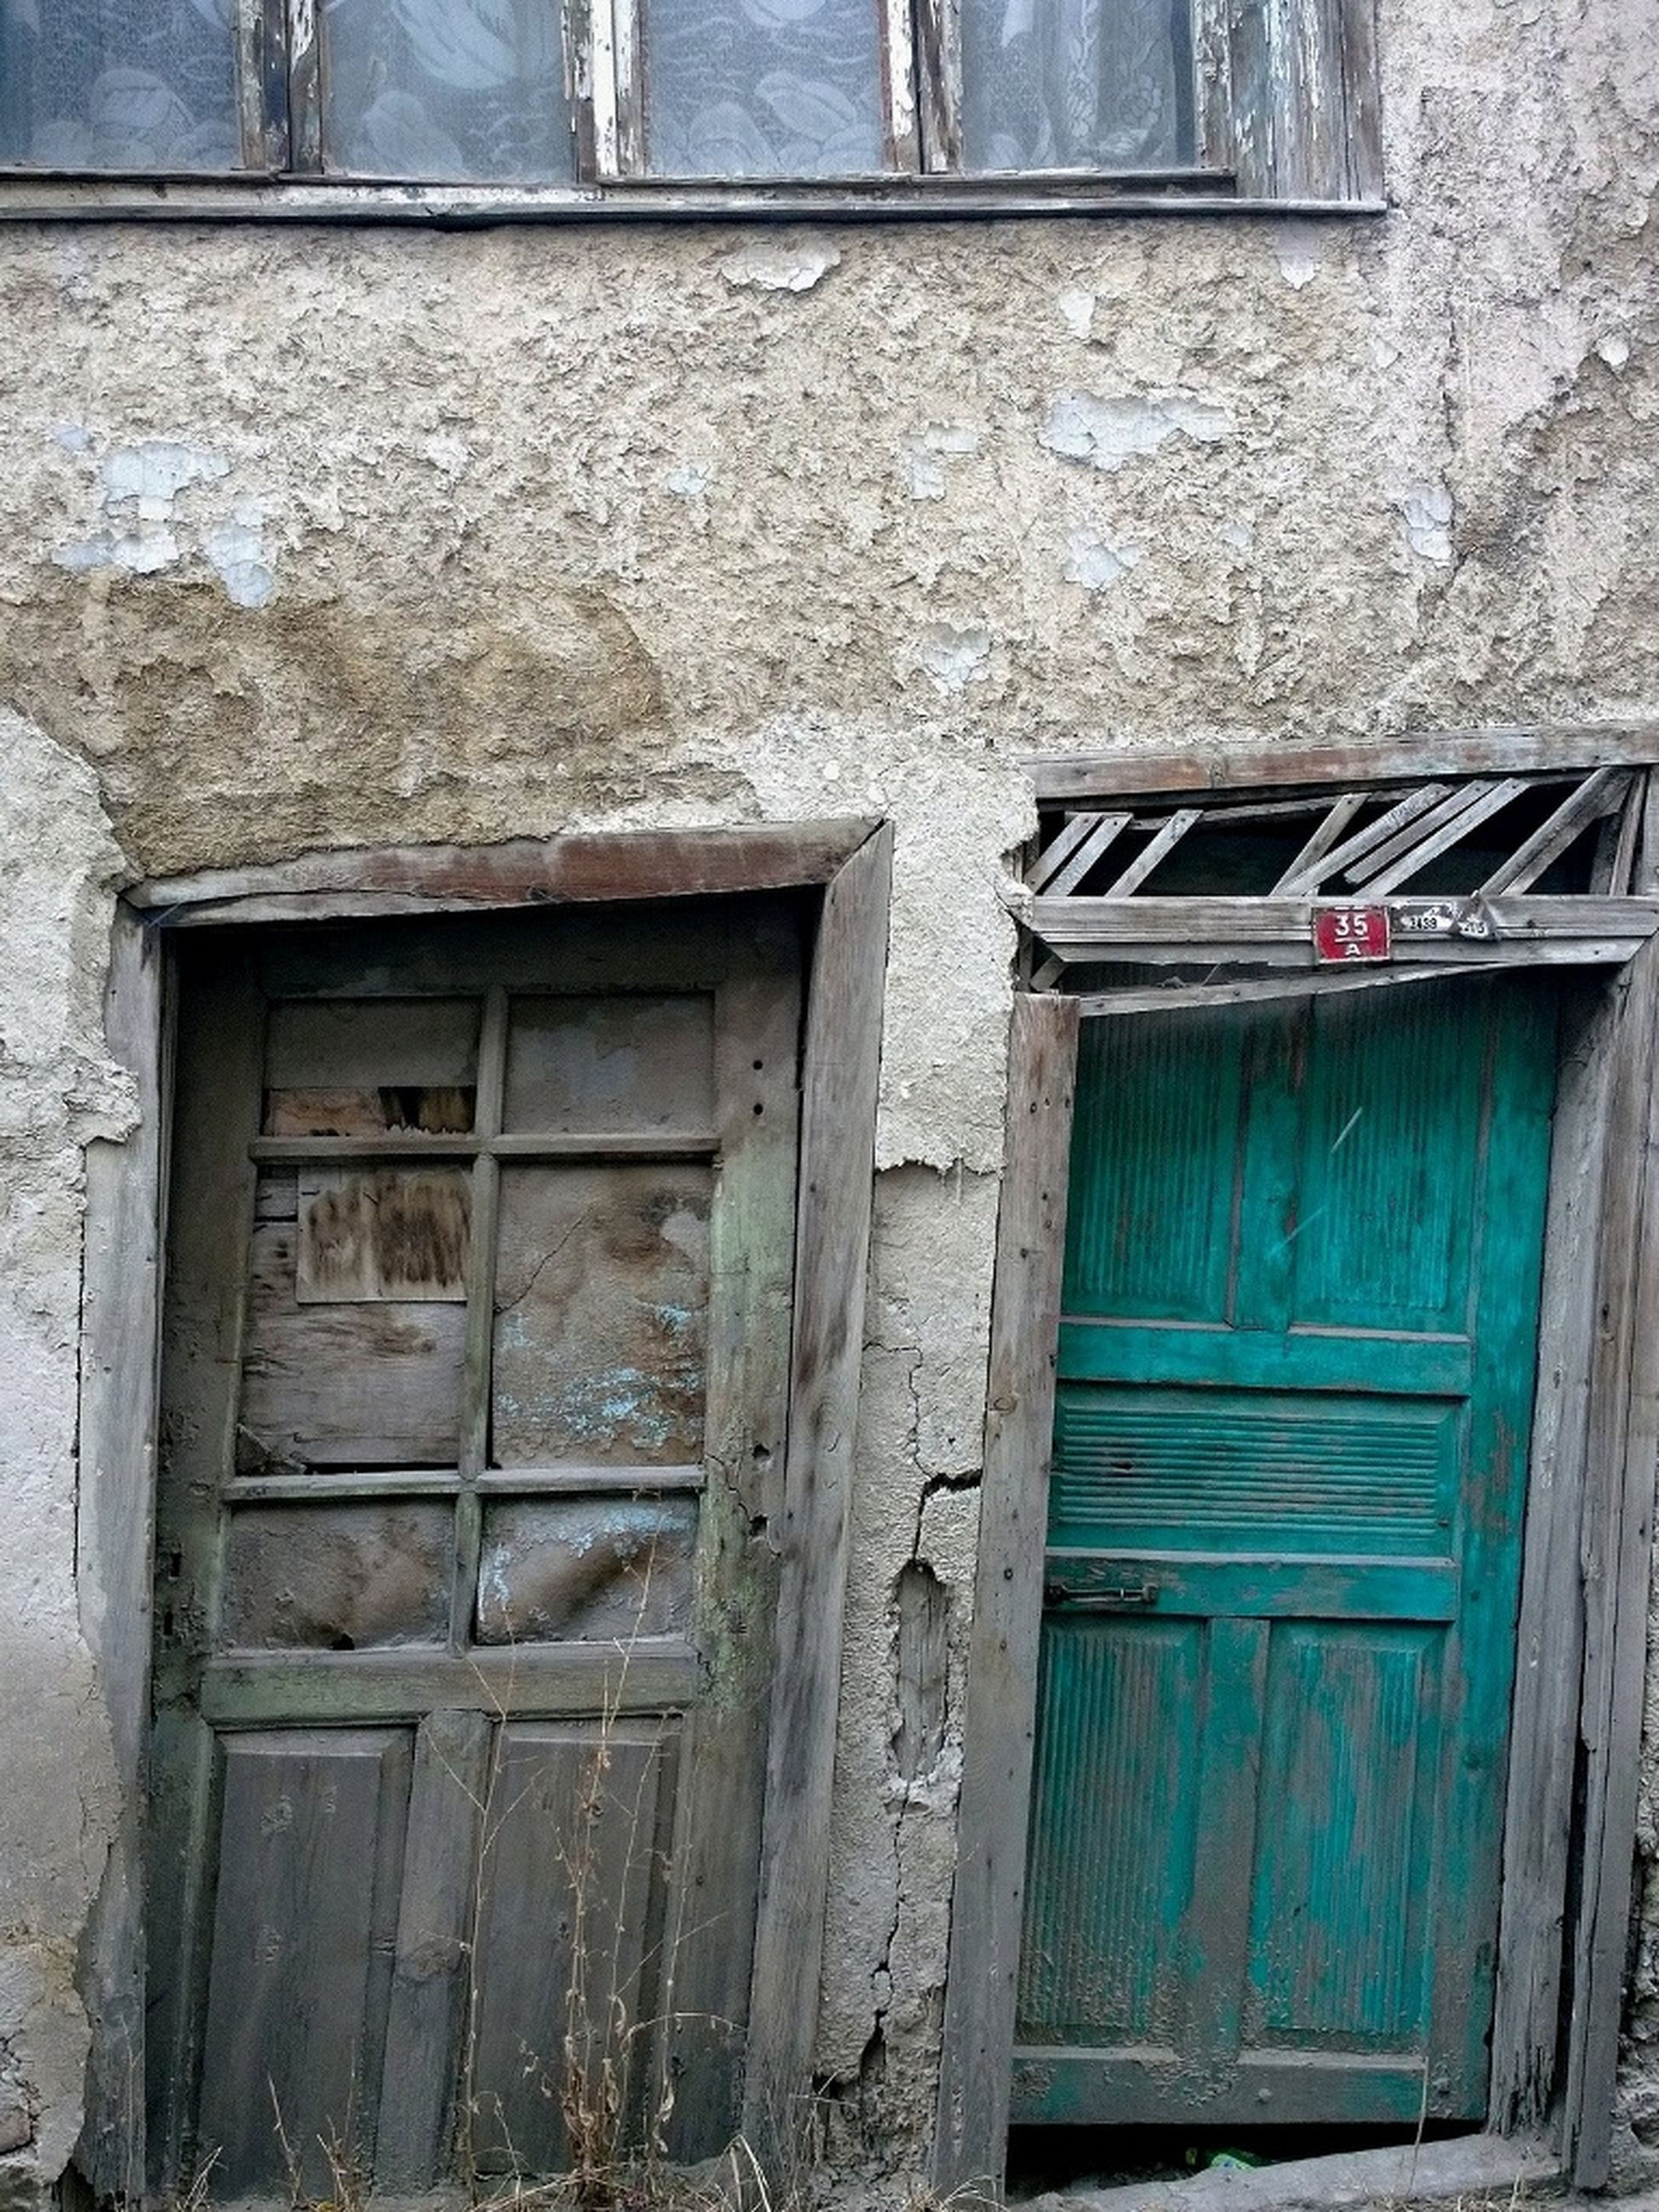 window, building exterior, built structure, architecture, house, door, closed, old, weathered, wood - material, abandoned, damaged, residential structure, day, outdoors, blue, obsolete, no people, protection, residential building